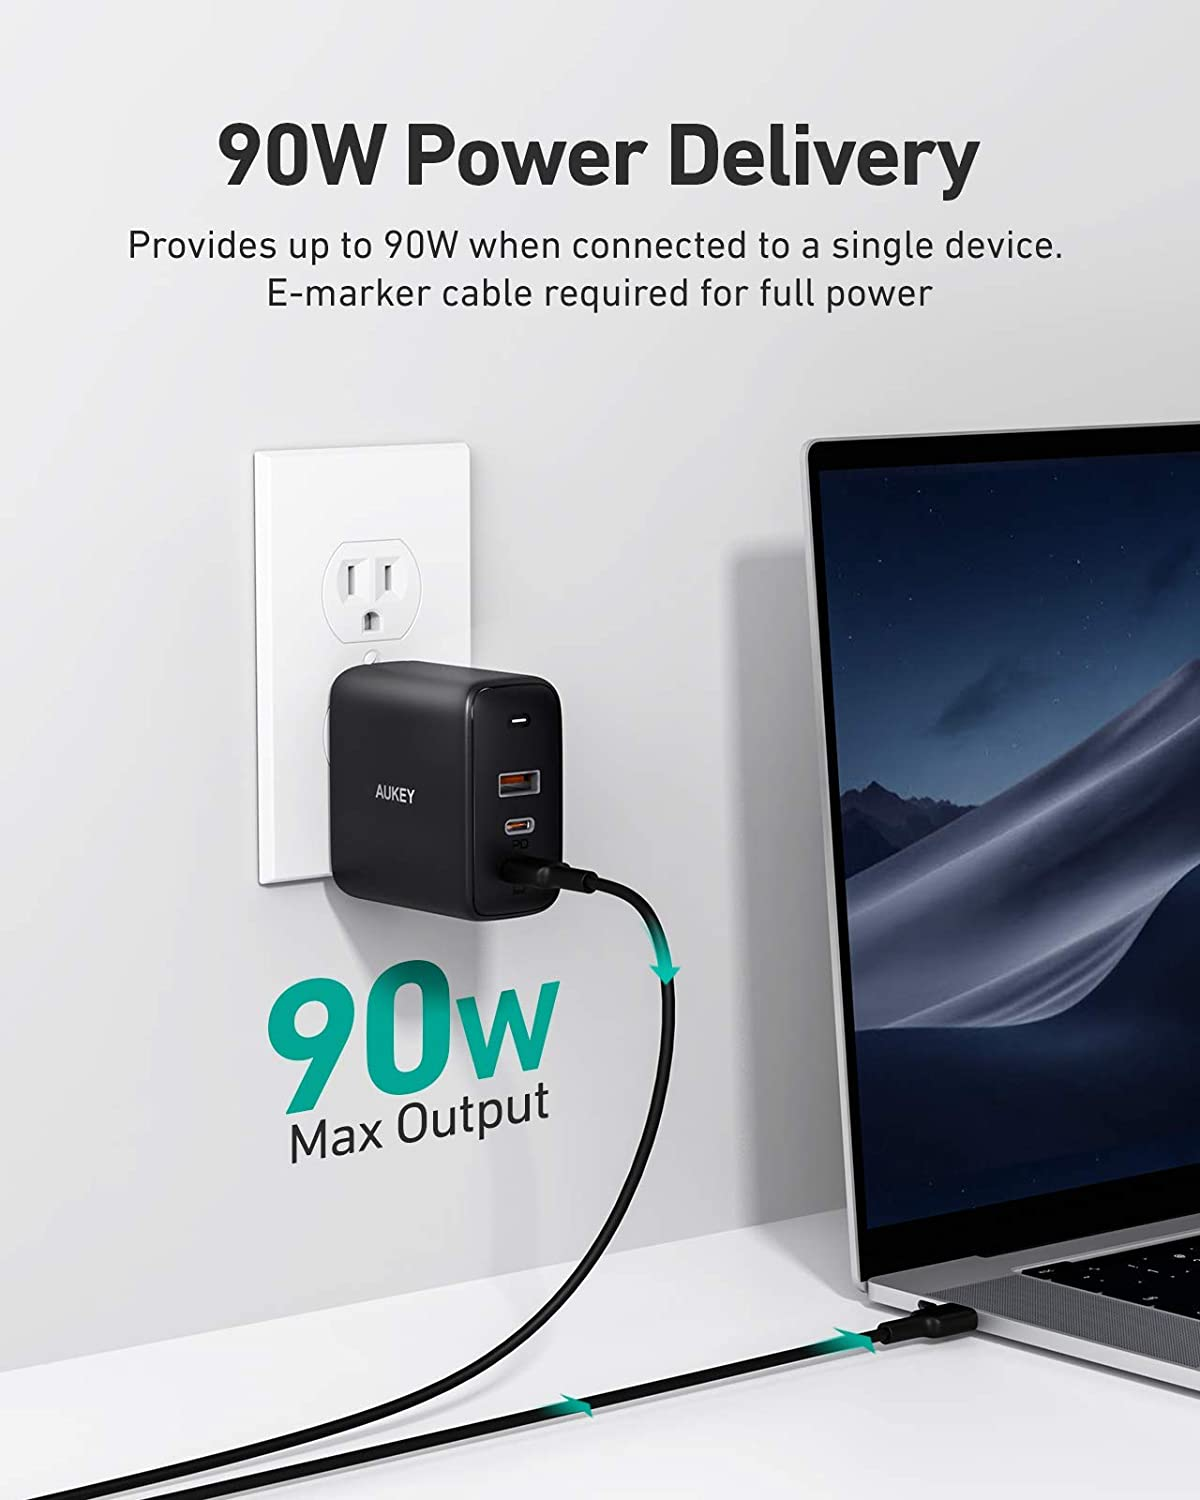 PD Charger USB C Fast Charger USB C Laptop Charger for MacBook Pro 16 AUKEY Omnia 90W 3-Port MacBook Pro Charger with GaNFast Technology Galaxy S20+//Note 20 Black iPhone 11 Pro Max USB C Charger